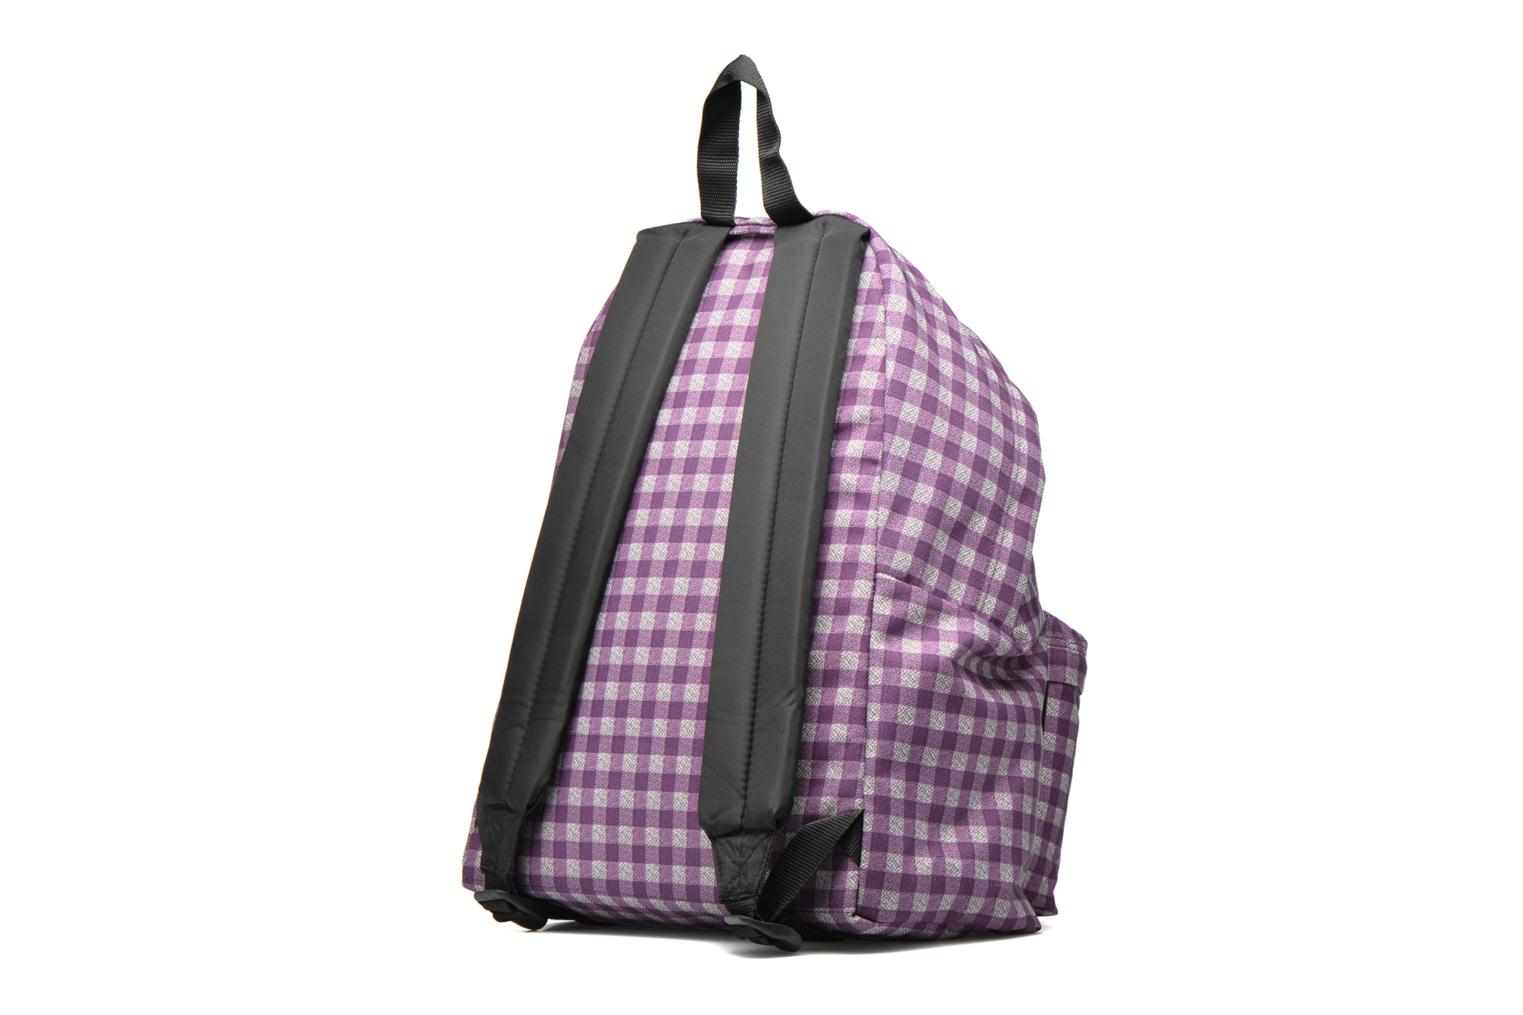 PADDED PACK'R Sac à dos toile Checksange purple